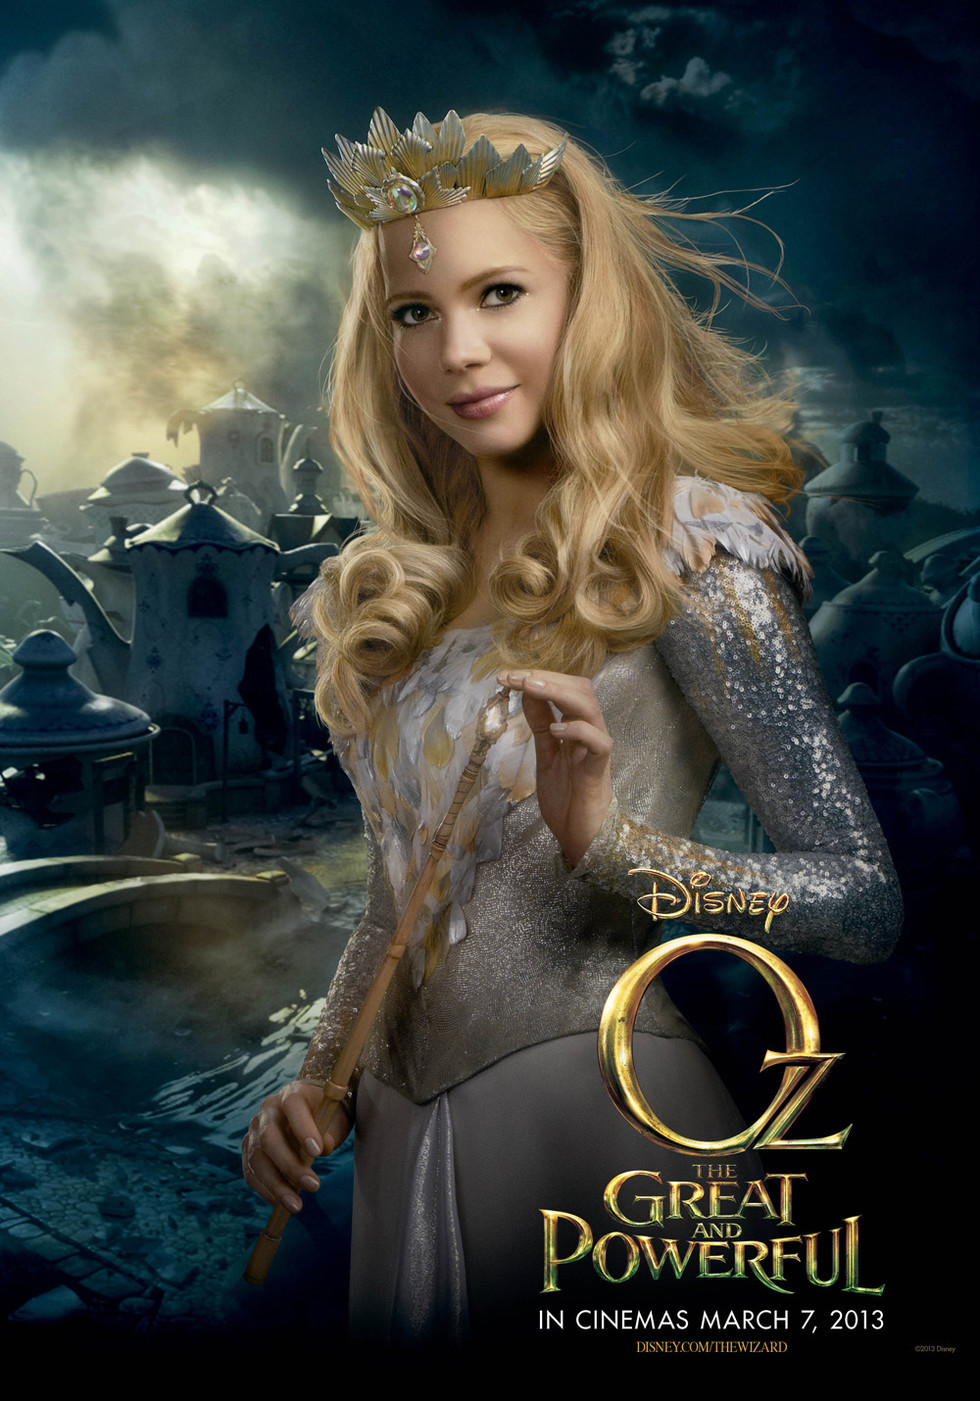 Oz the Great and Powerful - Movie Poster #9 (Large)